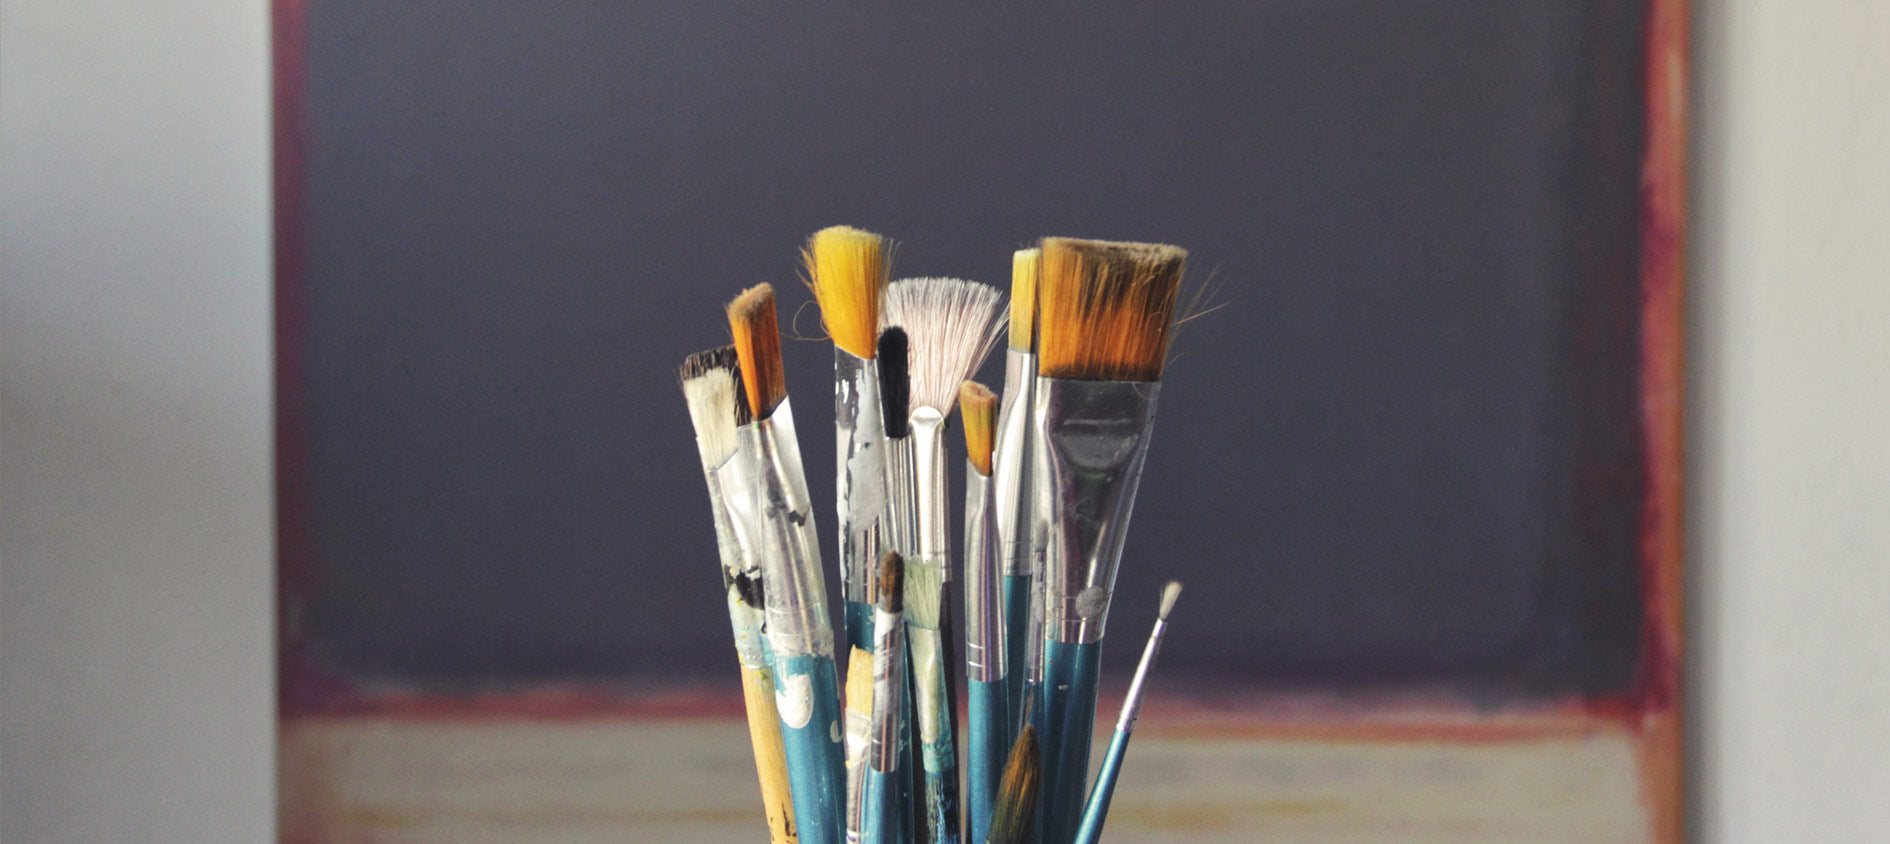 Beginner's guide to art supplies